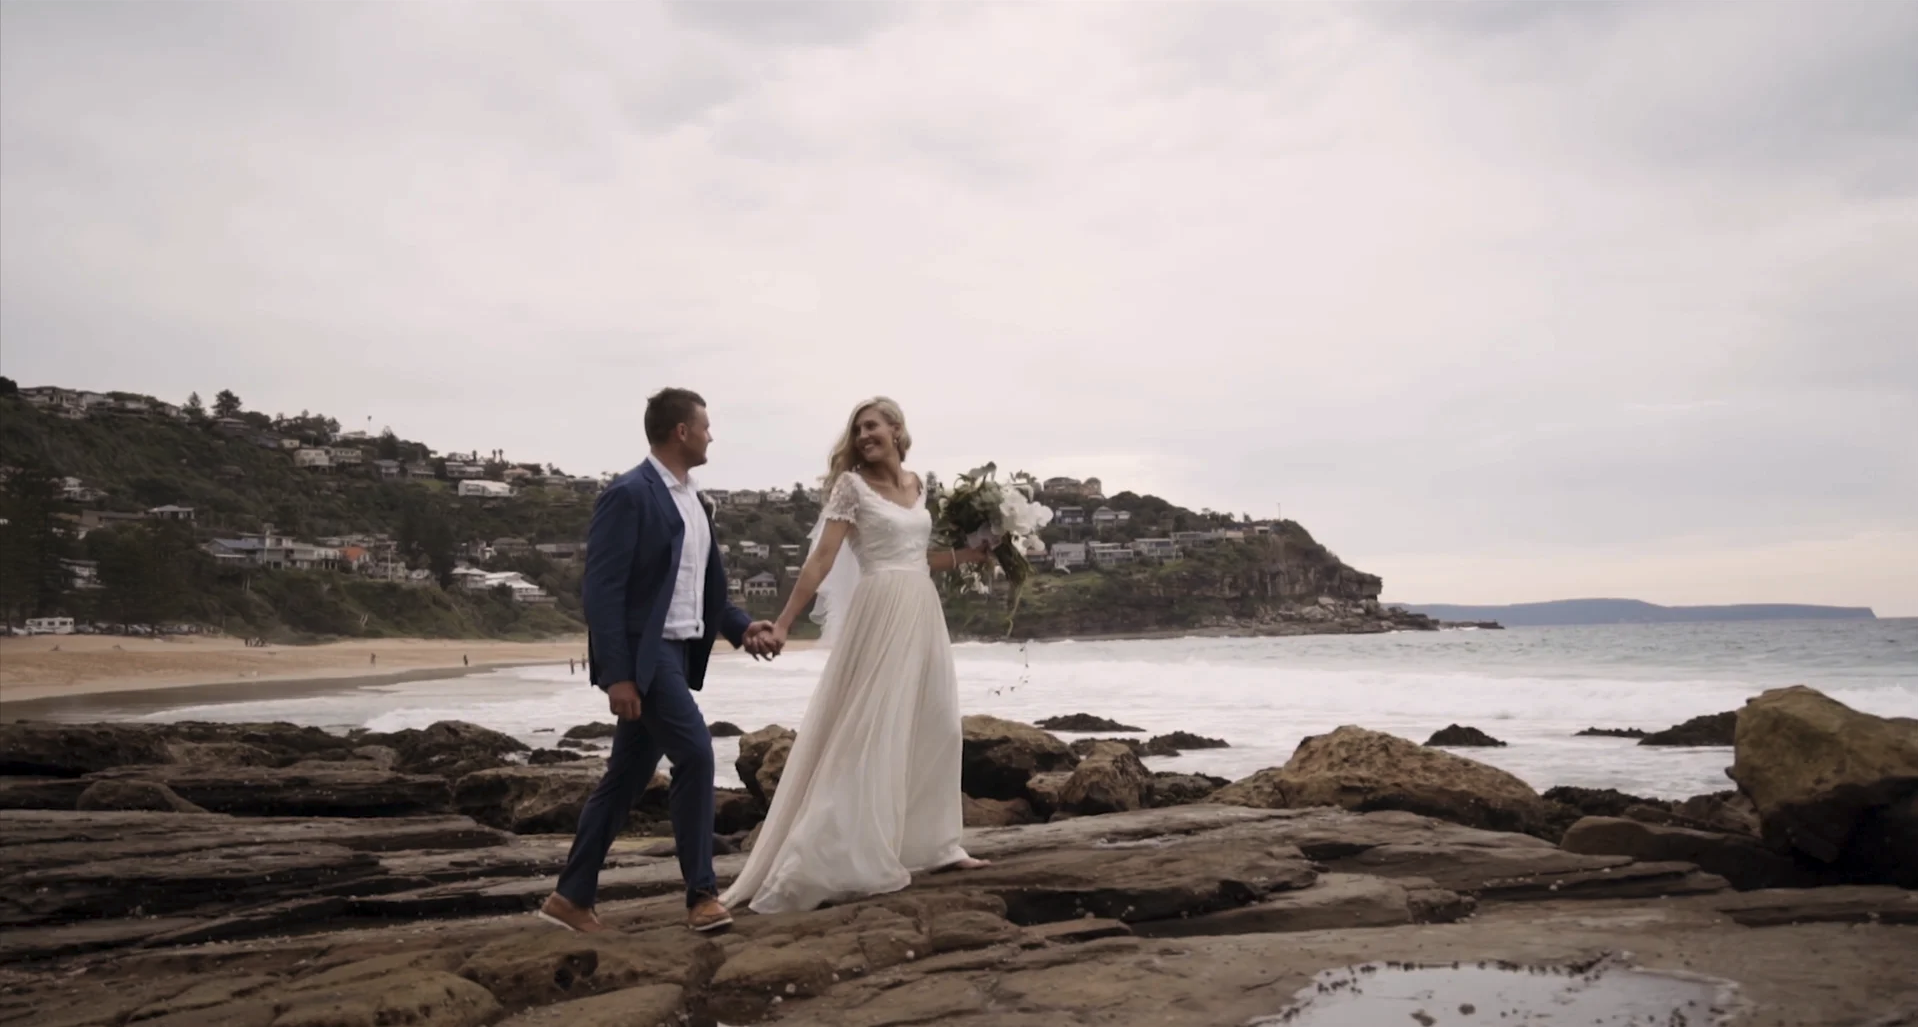 Alicia + Mick | Palm Beach, Australia | Snapperman Beach Reserve